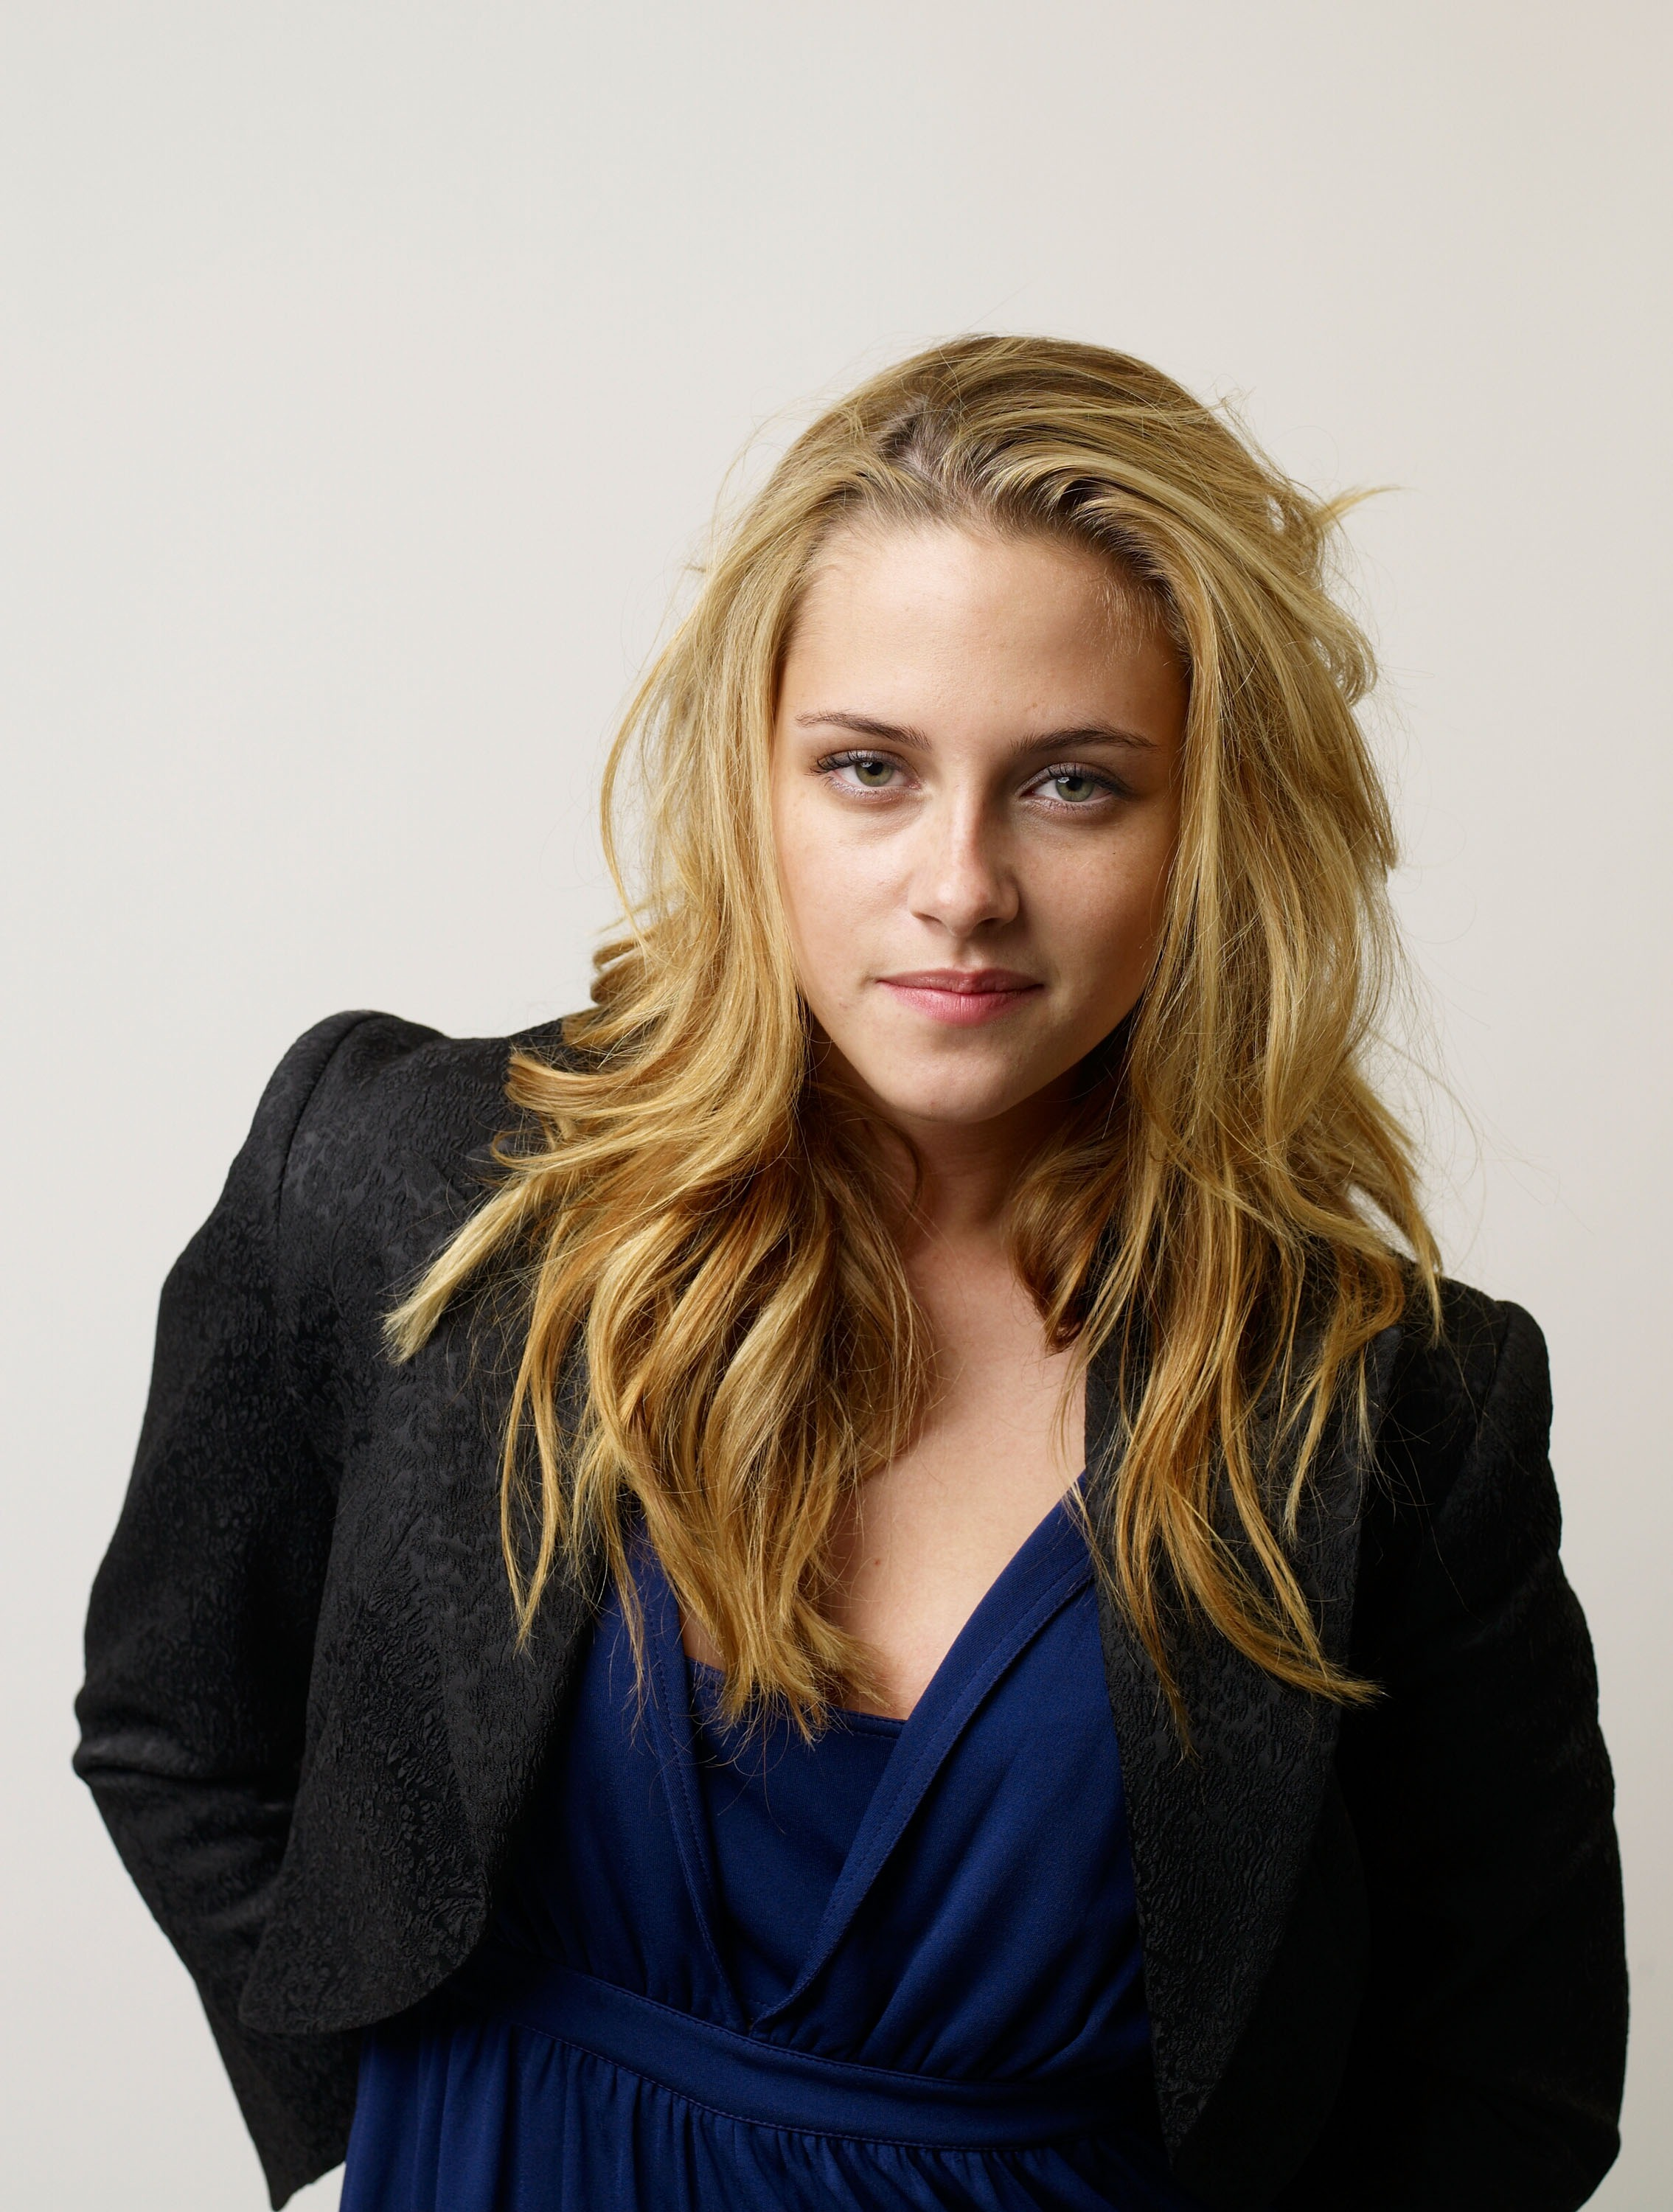 Kristen Stewart let her blond hair down and posed for a portrait for Into the Wild during the Toronto International Film Festival in September 2007.